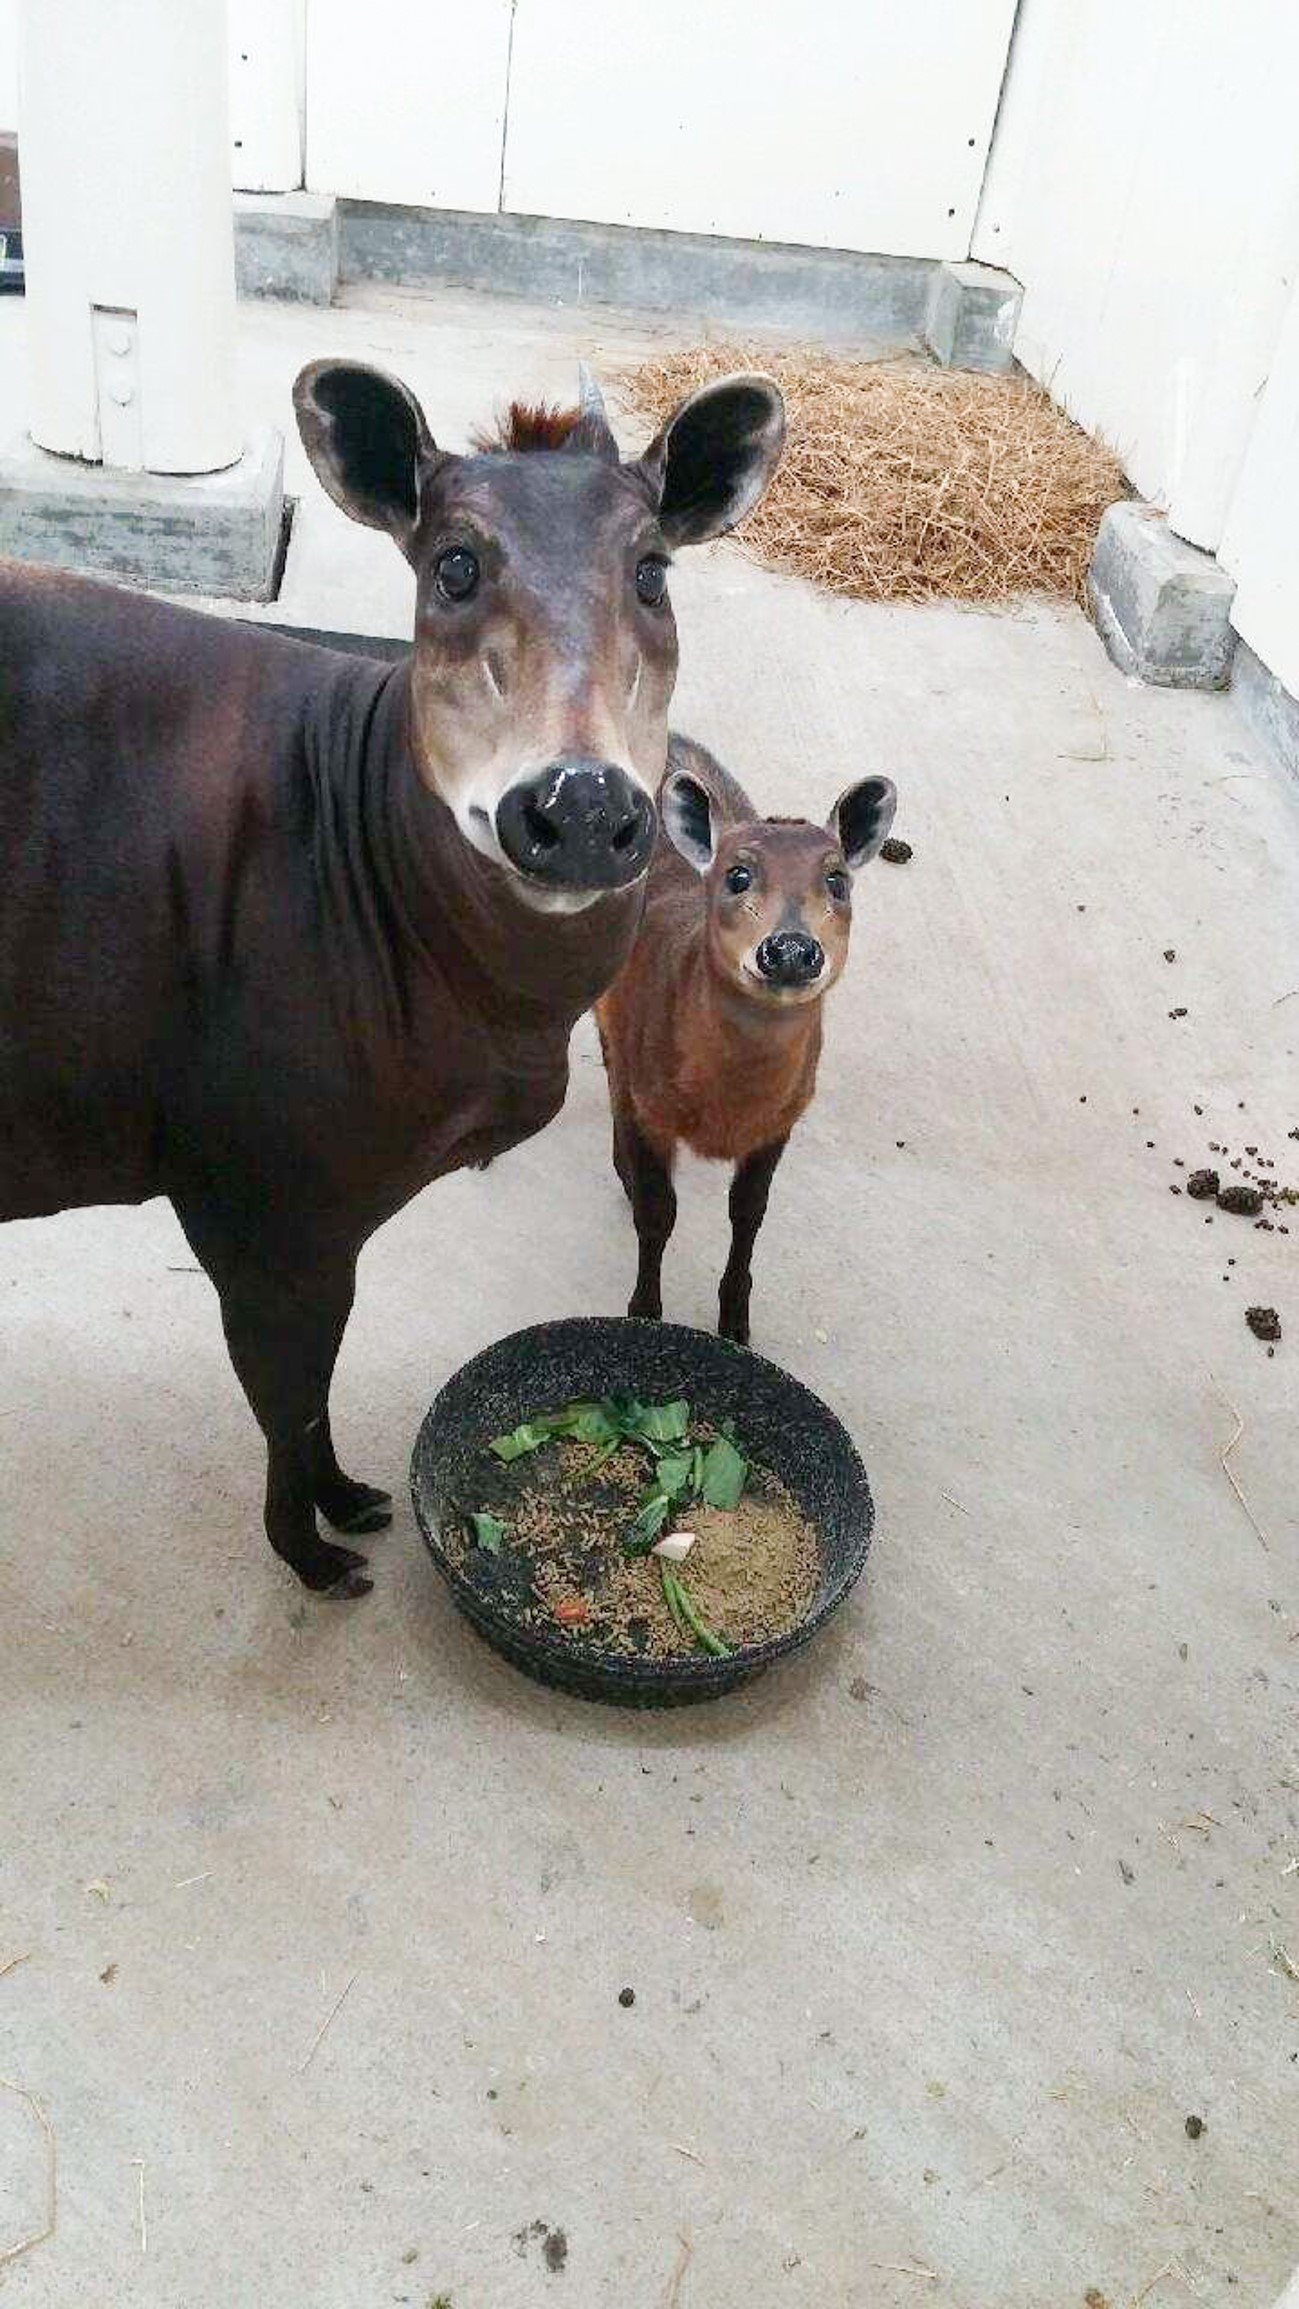 mother duiker and calf eating